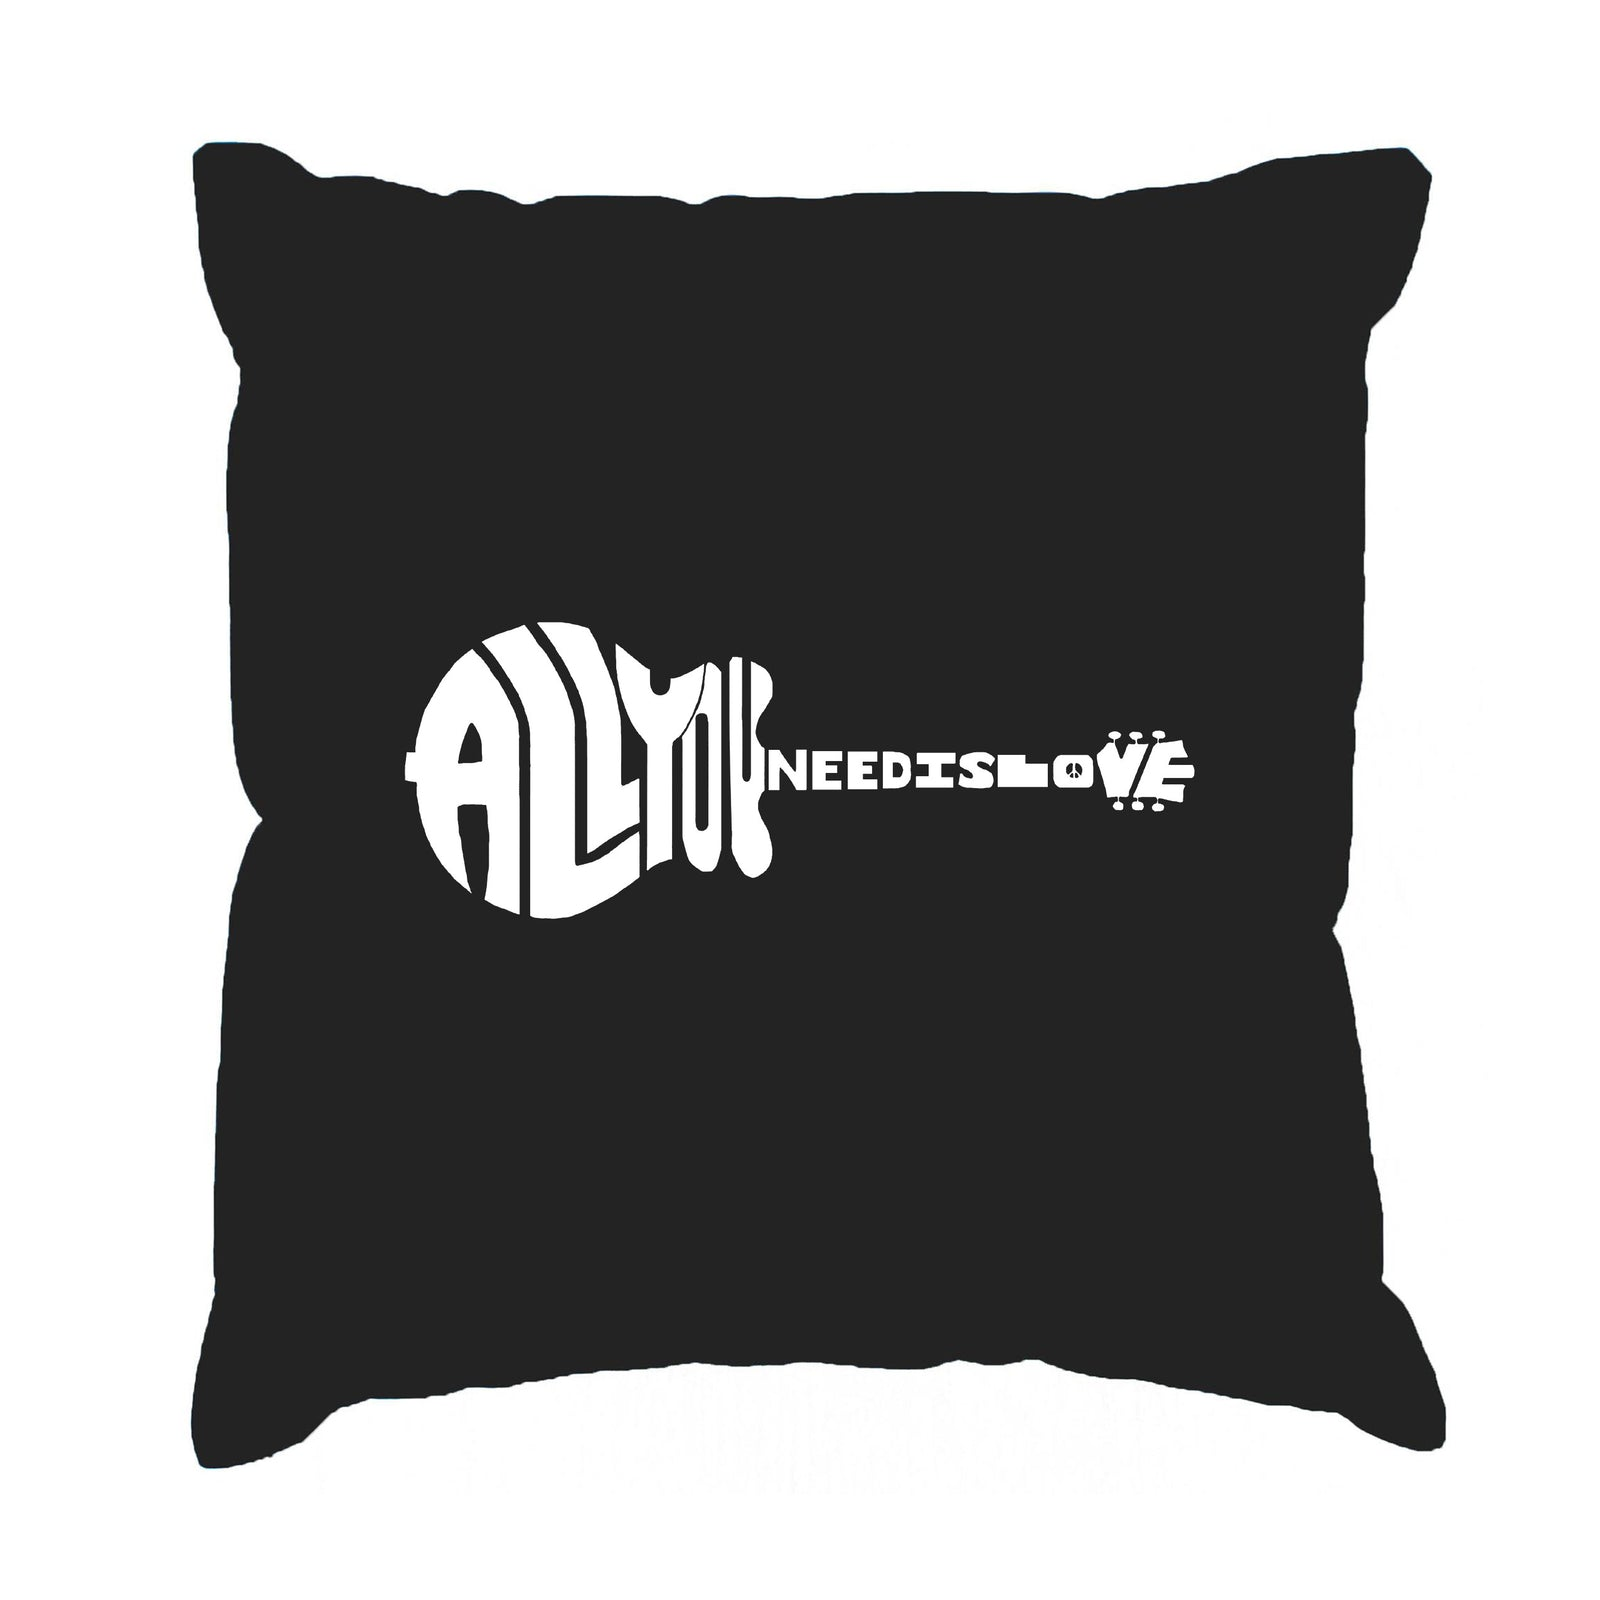 Throw Pillow Cover - All You Need Is Love